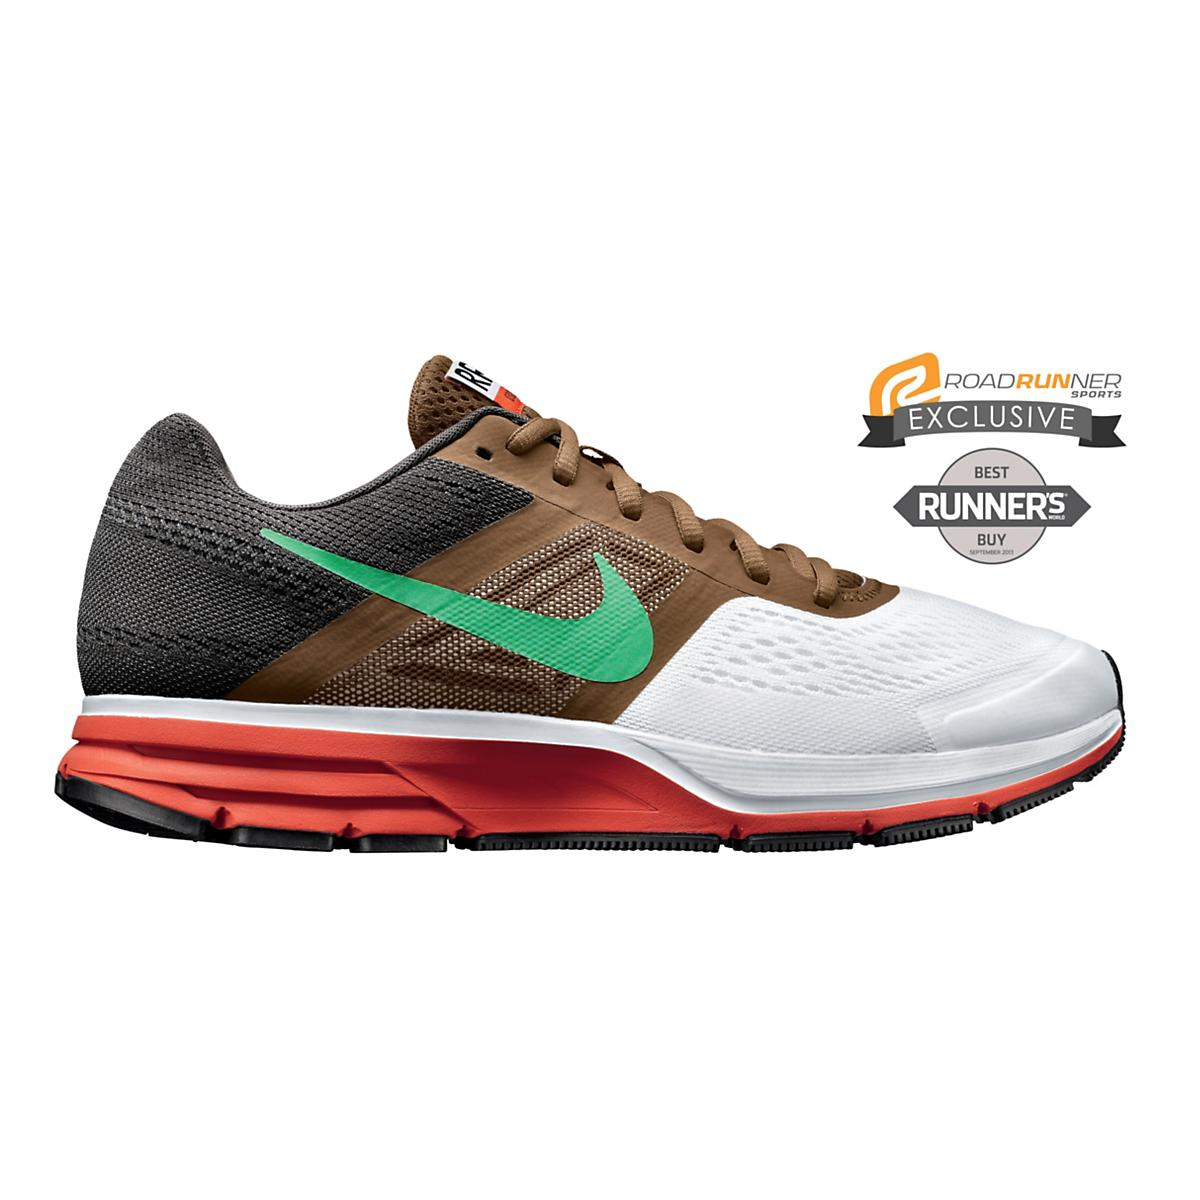 3ae9d03b9b73 Mens Nike Air Pegasus+ 30 Running Shoe at Road Runner Sports